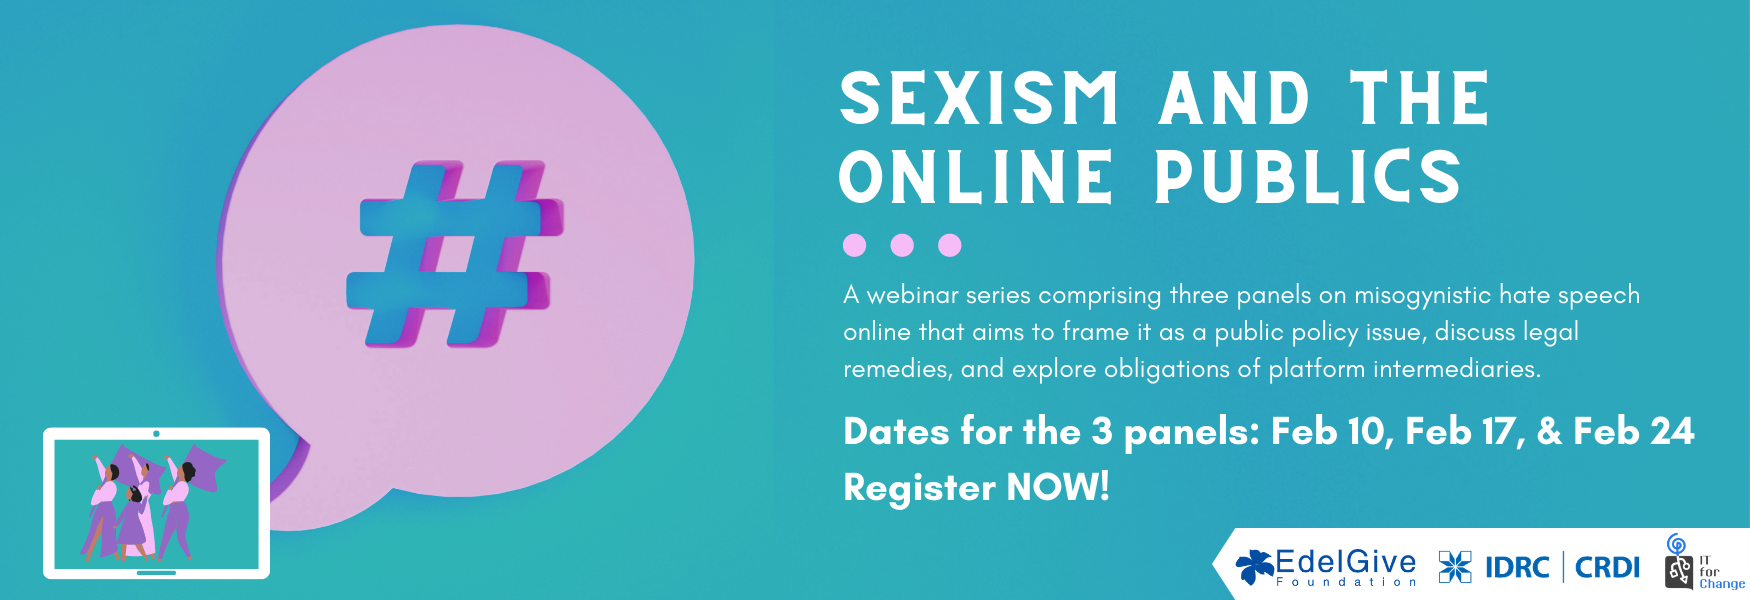 Sexism and the Online Publics